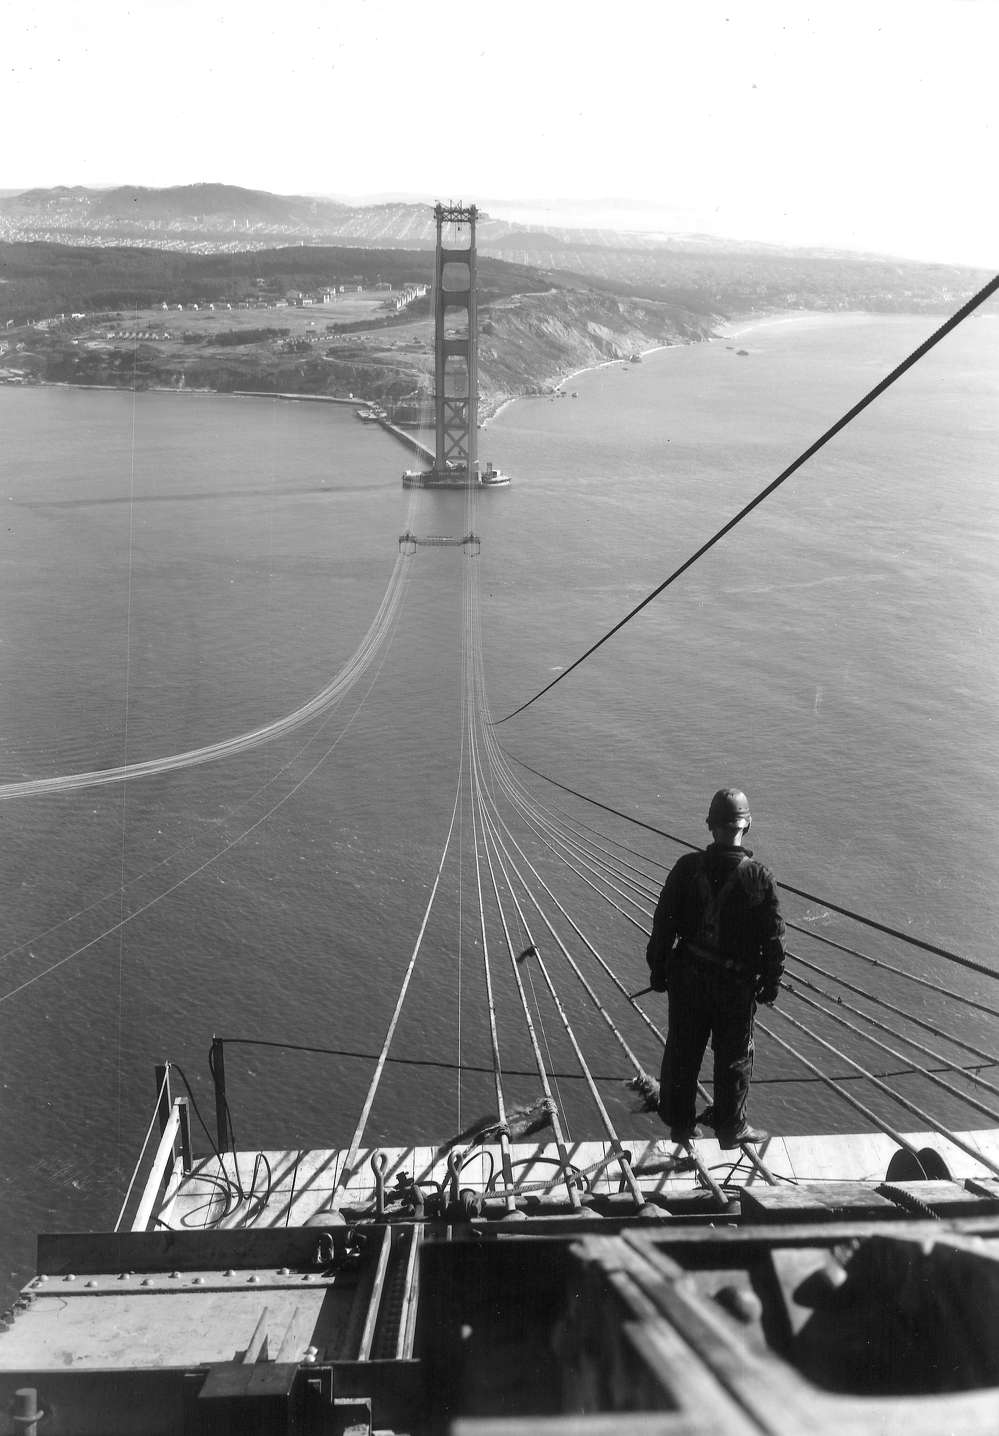 A worker pauses on the north tower during construction of the Golden Gate